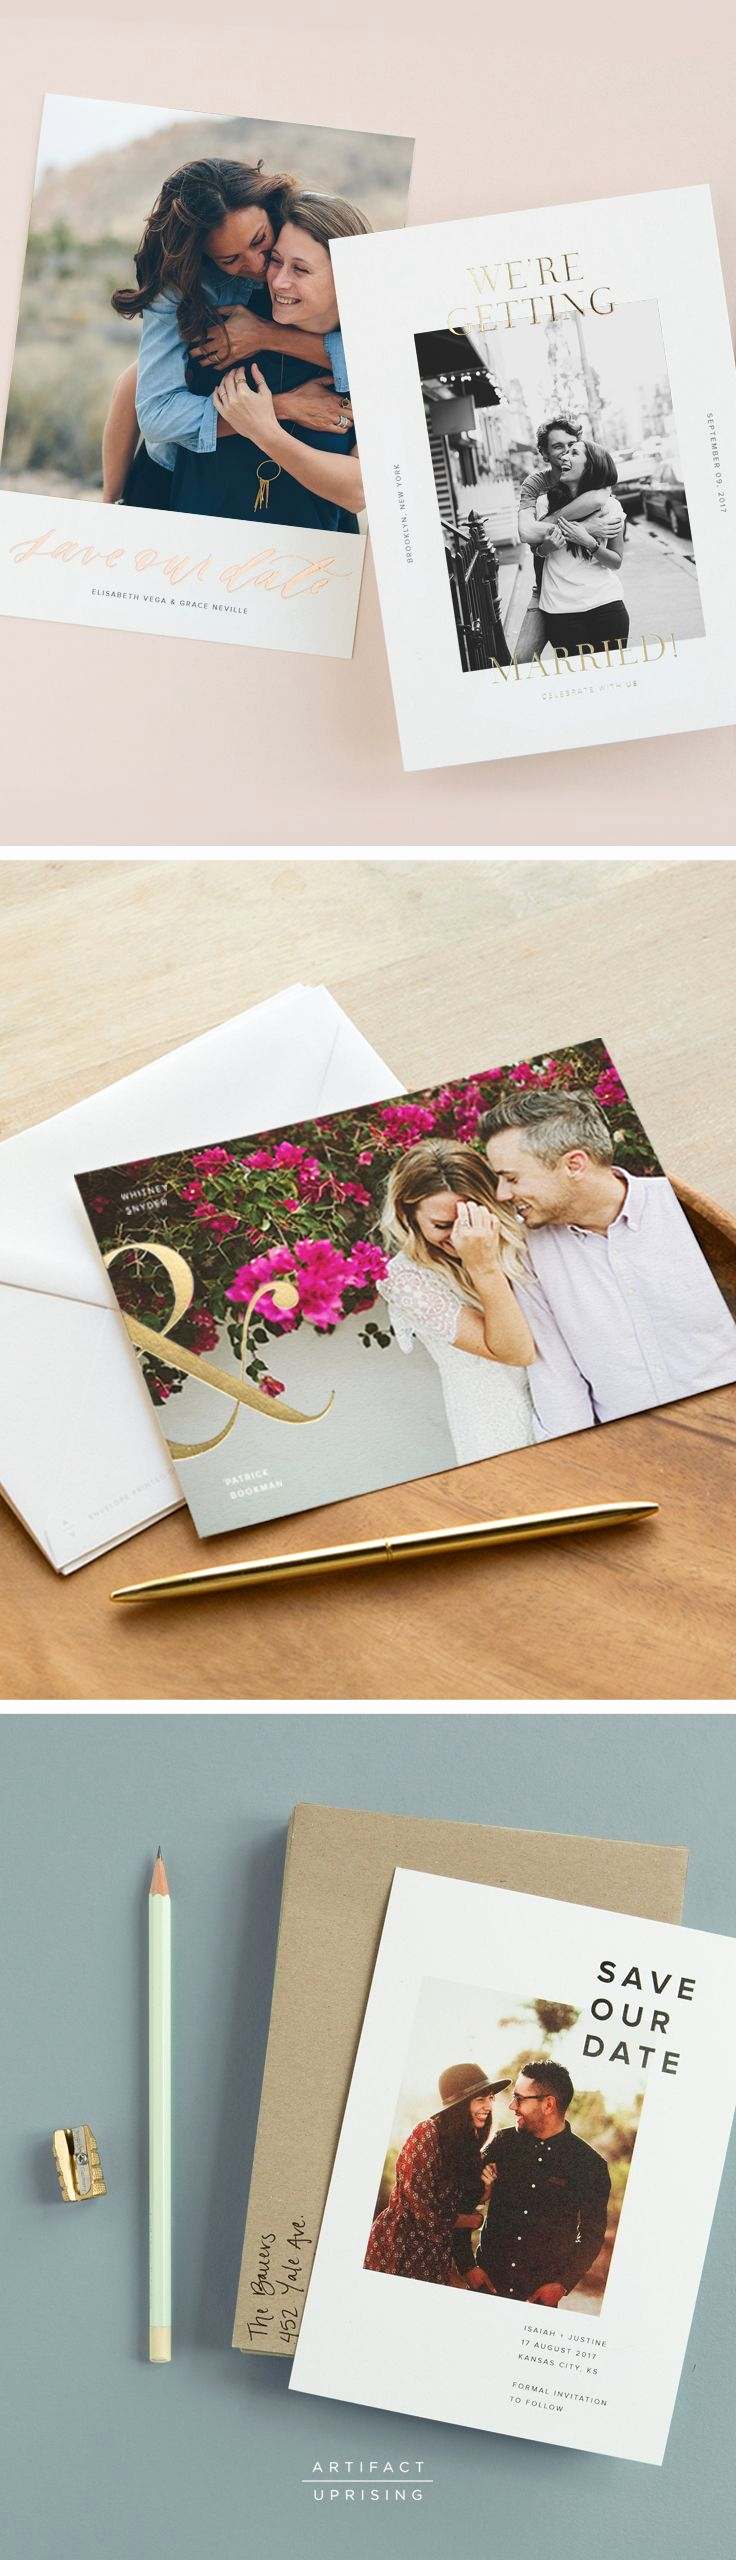 Save the Date Karten Text Neu Make It Official with Artifactuprsng S Save the Dates Elevated